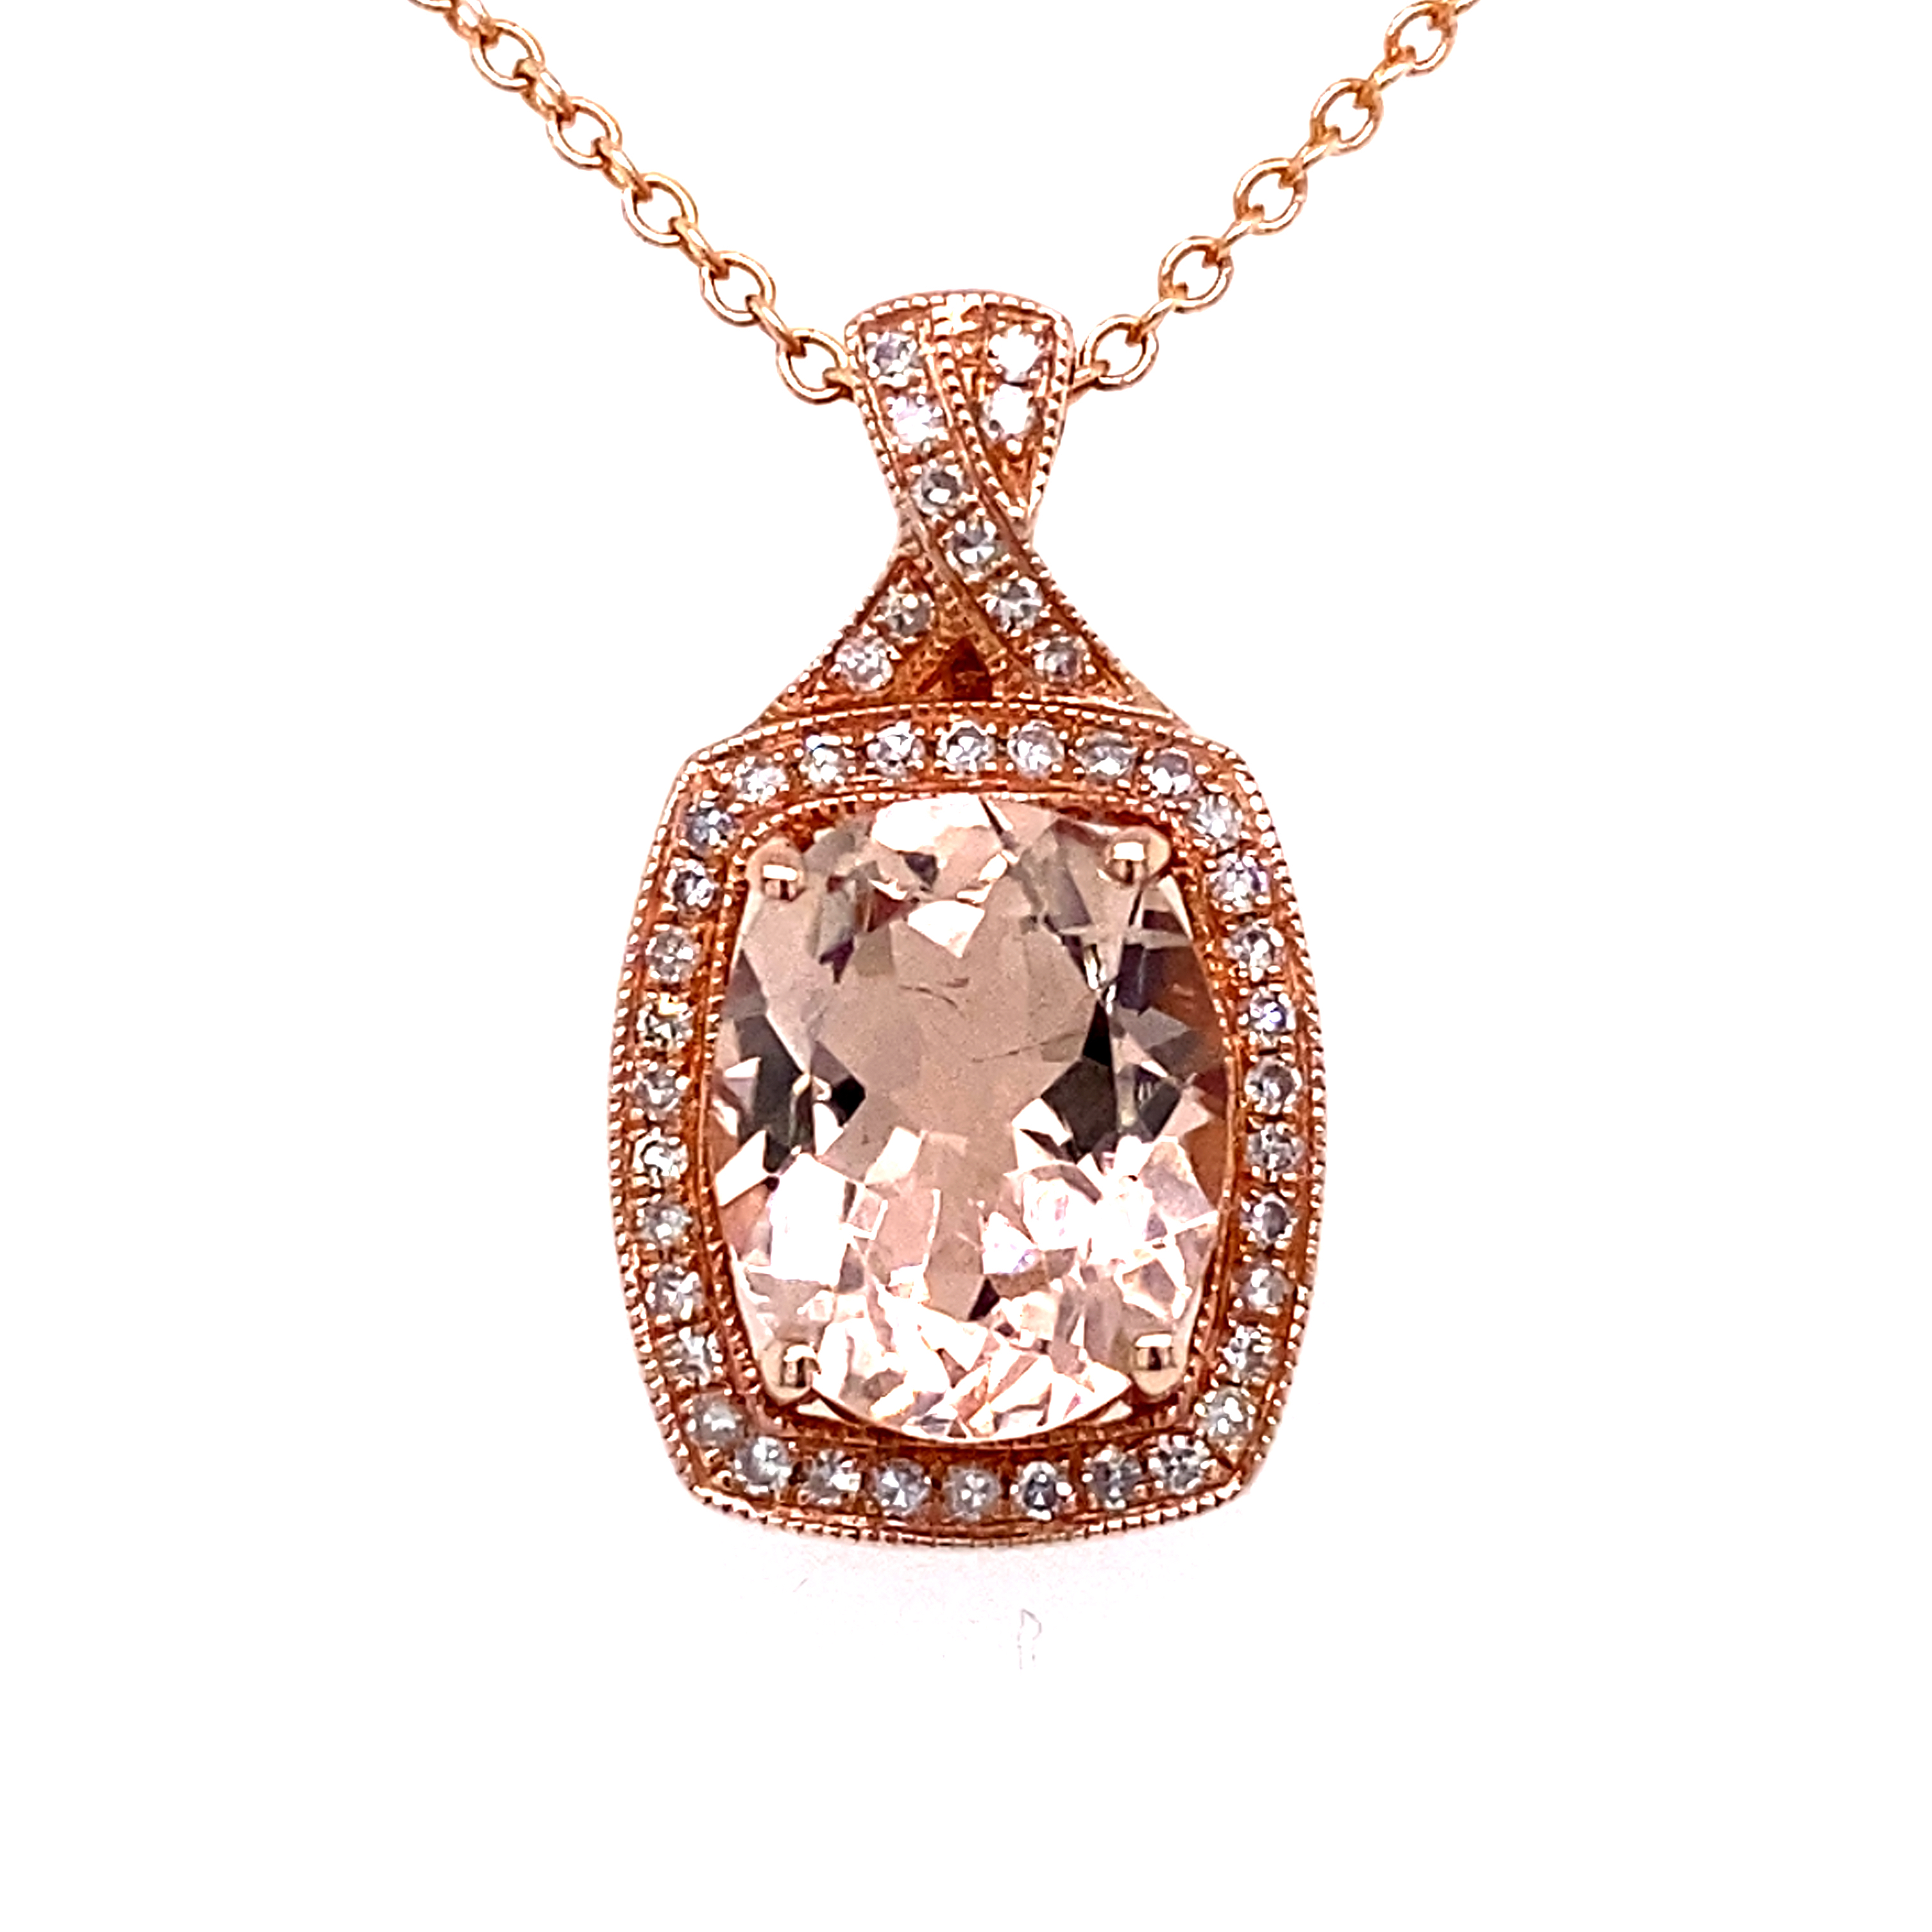 14ct Rose Gold, Morganite and Diamond Pendant.